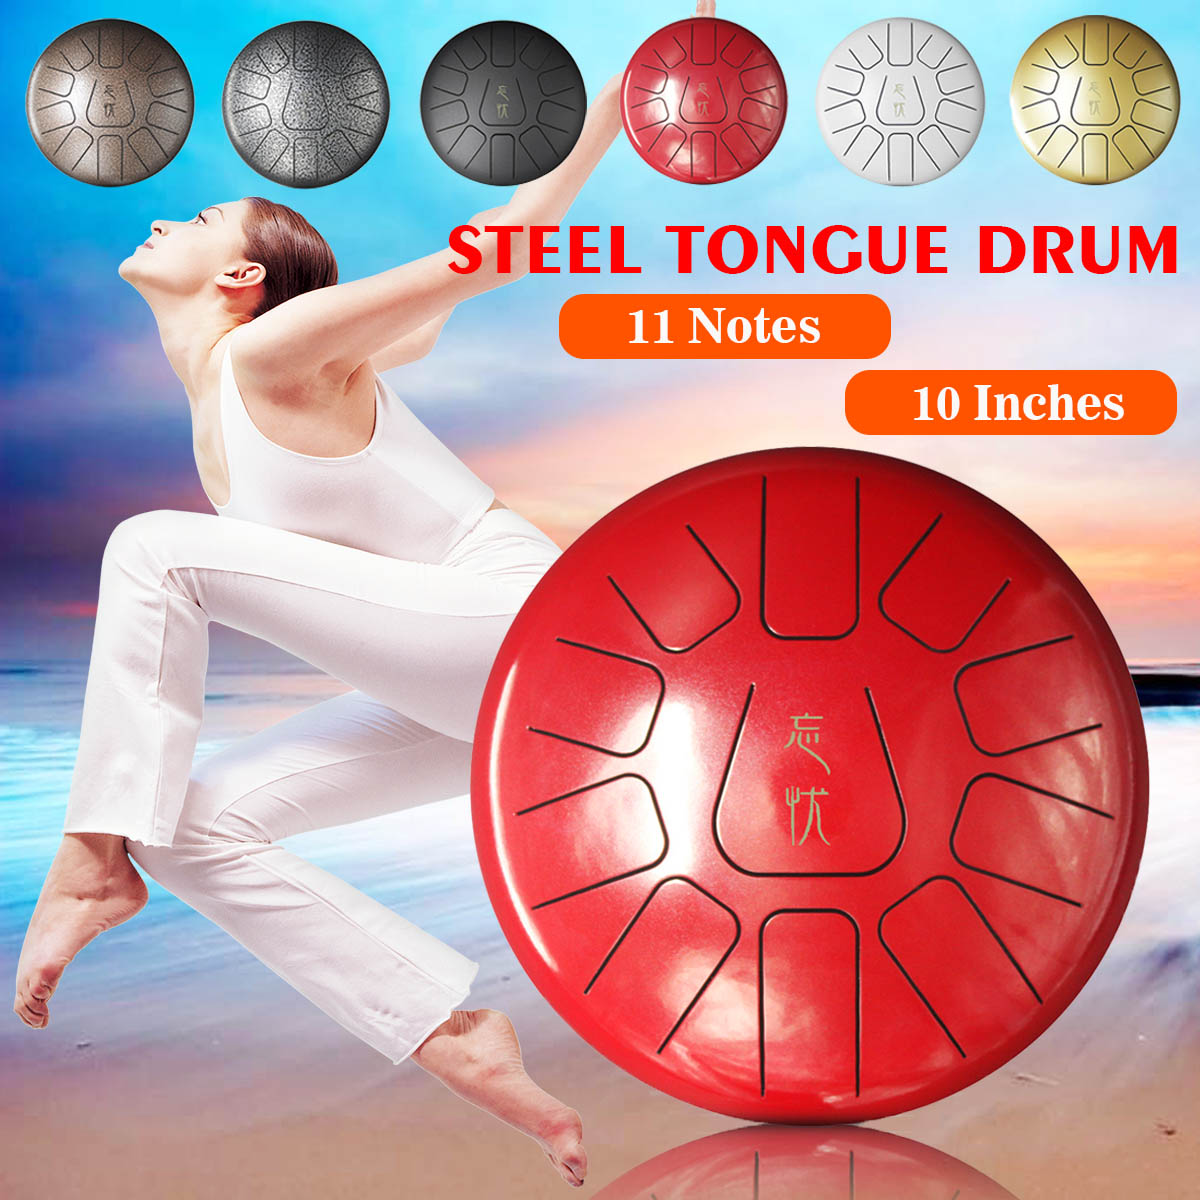 10 Inch Percussion Drum Steel Tongue Drum Hand Pan Drum with Drum Mallets Carry Bags Note Sticks Percussion Instrument10 Inch Percussion Drum Steel Tongue Drum Hand Pan Drum with Drum Mallets Carry Bags Note Sticks Percussion Instrument